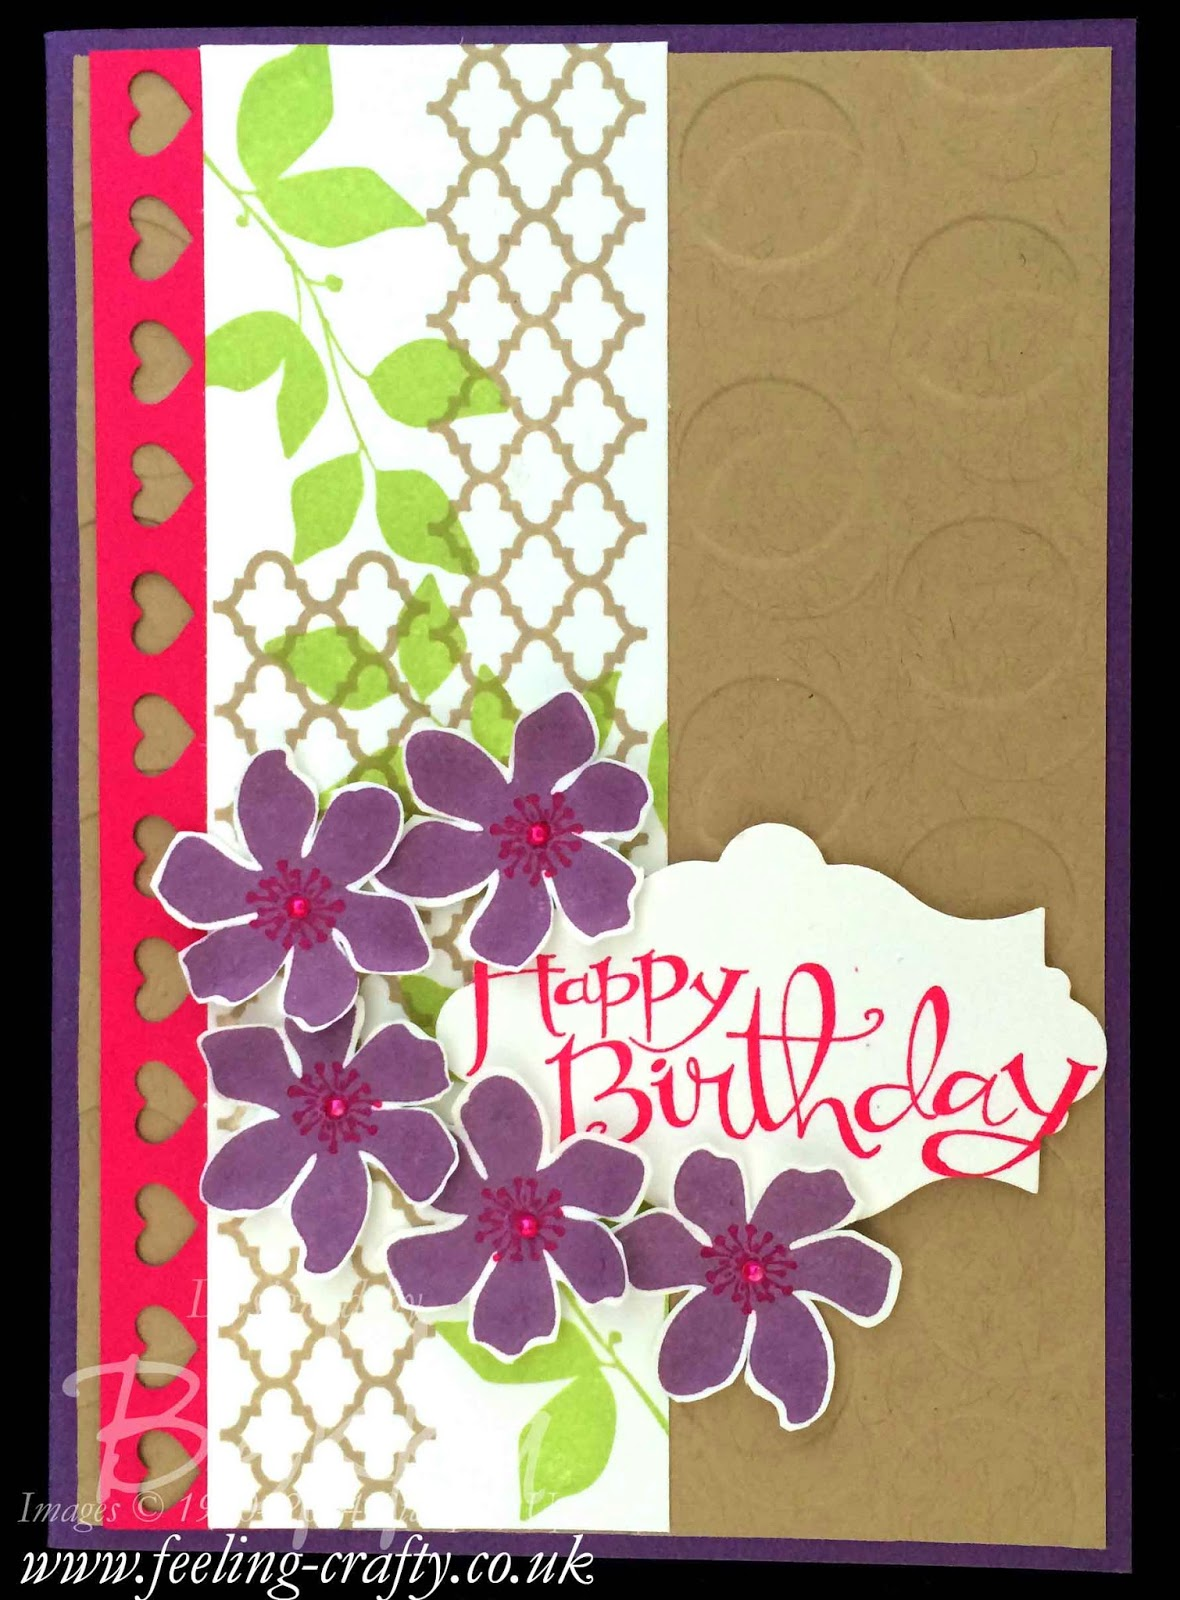 Summer Silhouettes Birthday Card uing a Fun Trick with your Embossing Folders - check this blog for lots of great ideas